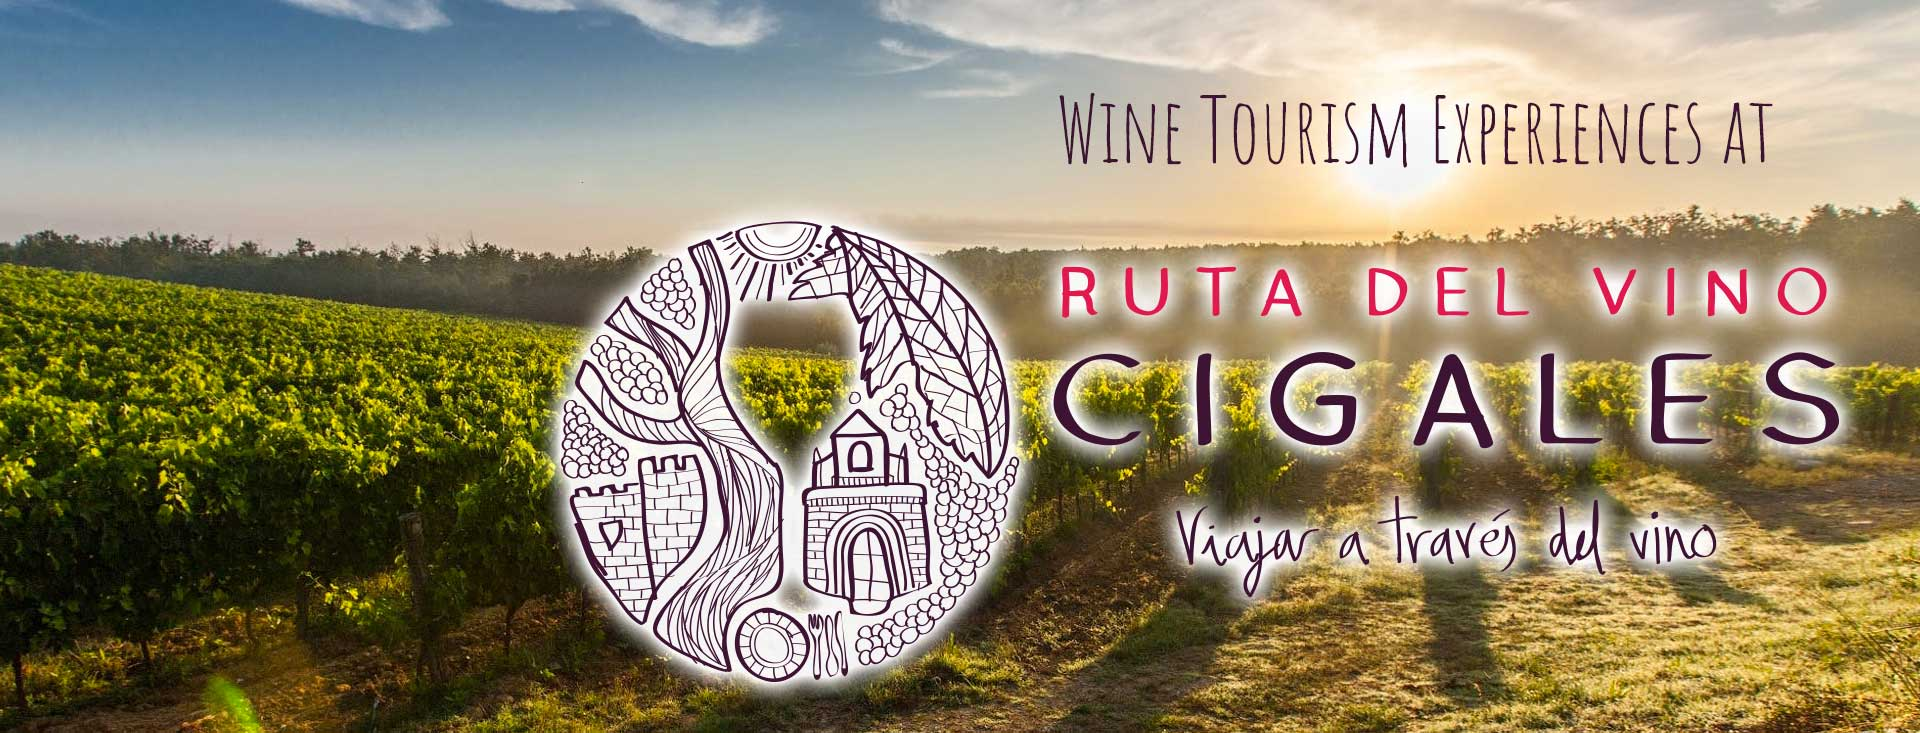 Cigales Wine Route